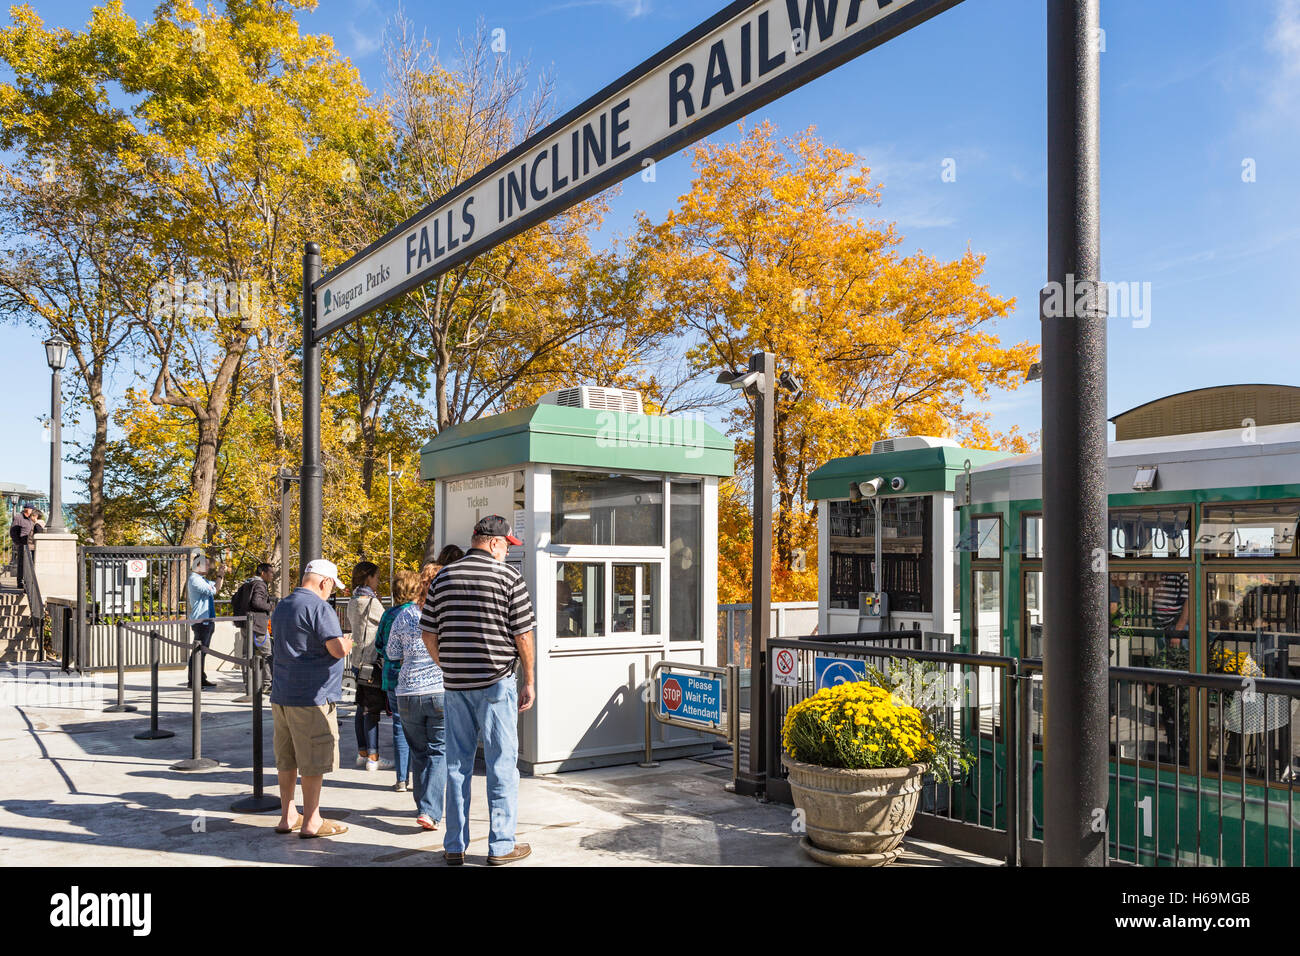 Passengers purchase tickets for the Falls Incline Railway in Niagara Falls, Ontario, Canada. - Stock Image